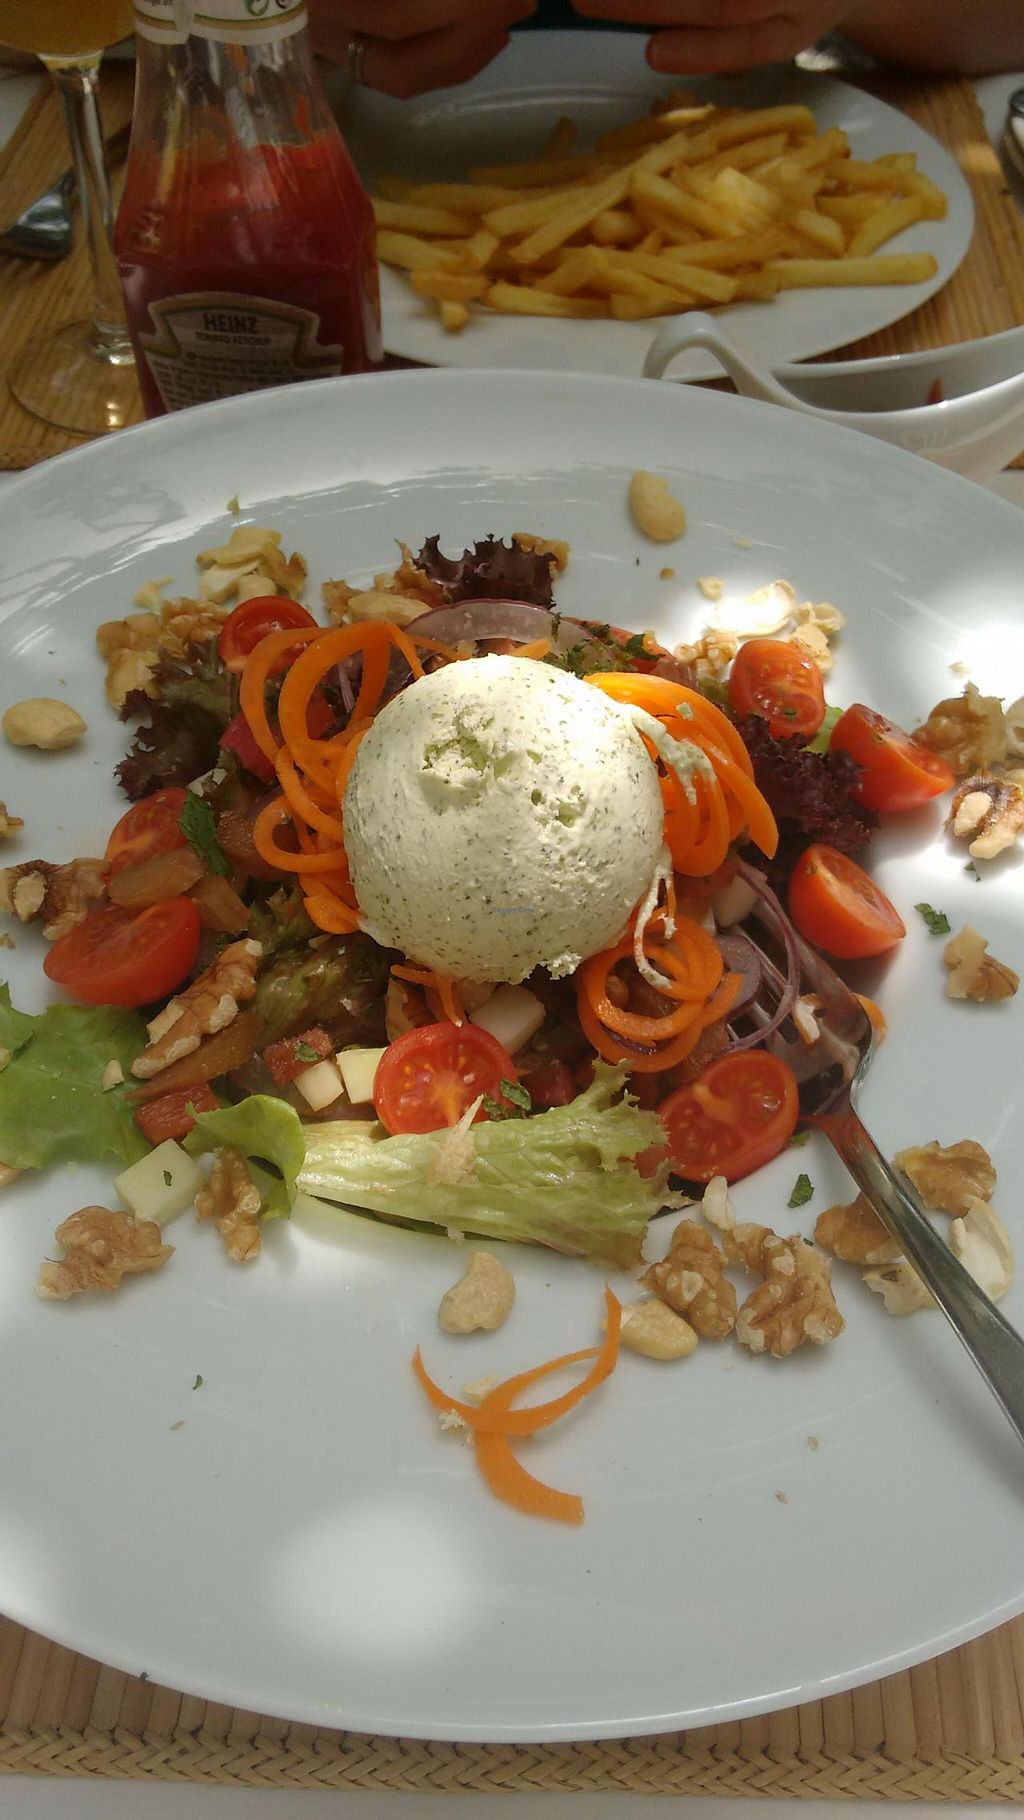 "Photo of Bellaverde  by <a href=""/members/profile/craigmc"">craigmc</a> <br/>Awesome salad <br/> May 14, 2015  - <a href='/contact/abuse/image/27185/102170'>Report</a>"